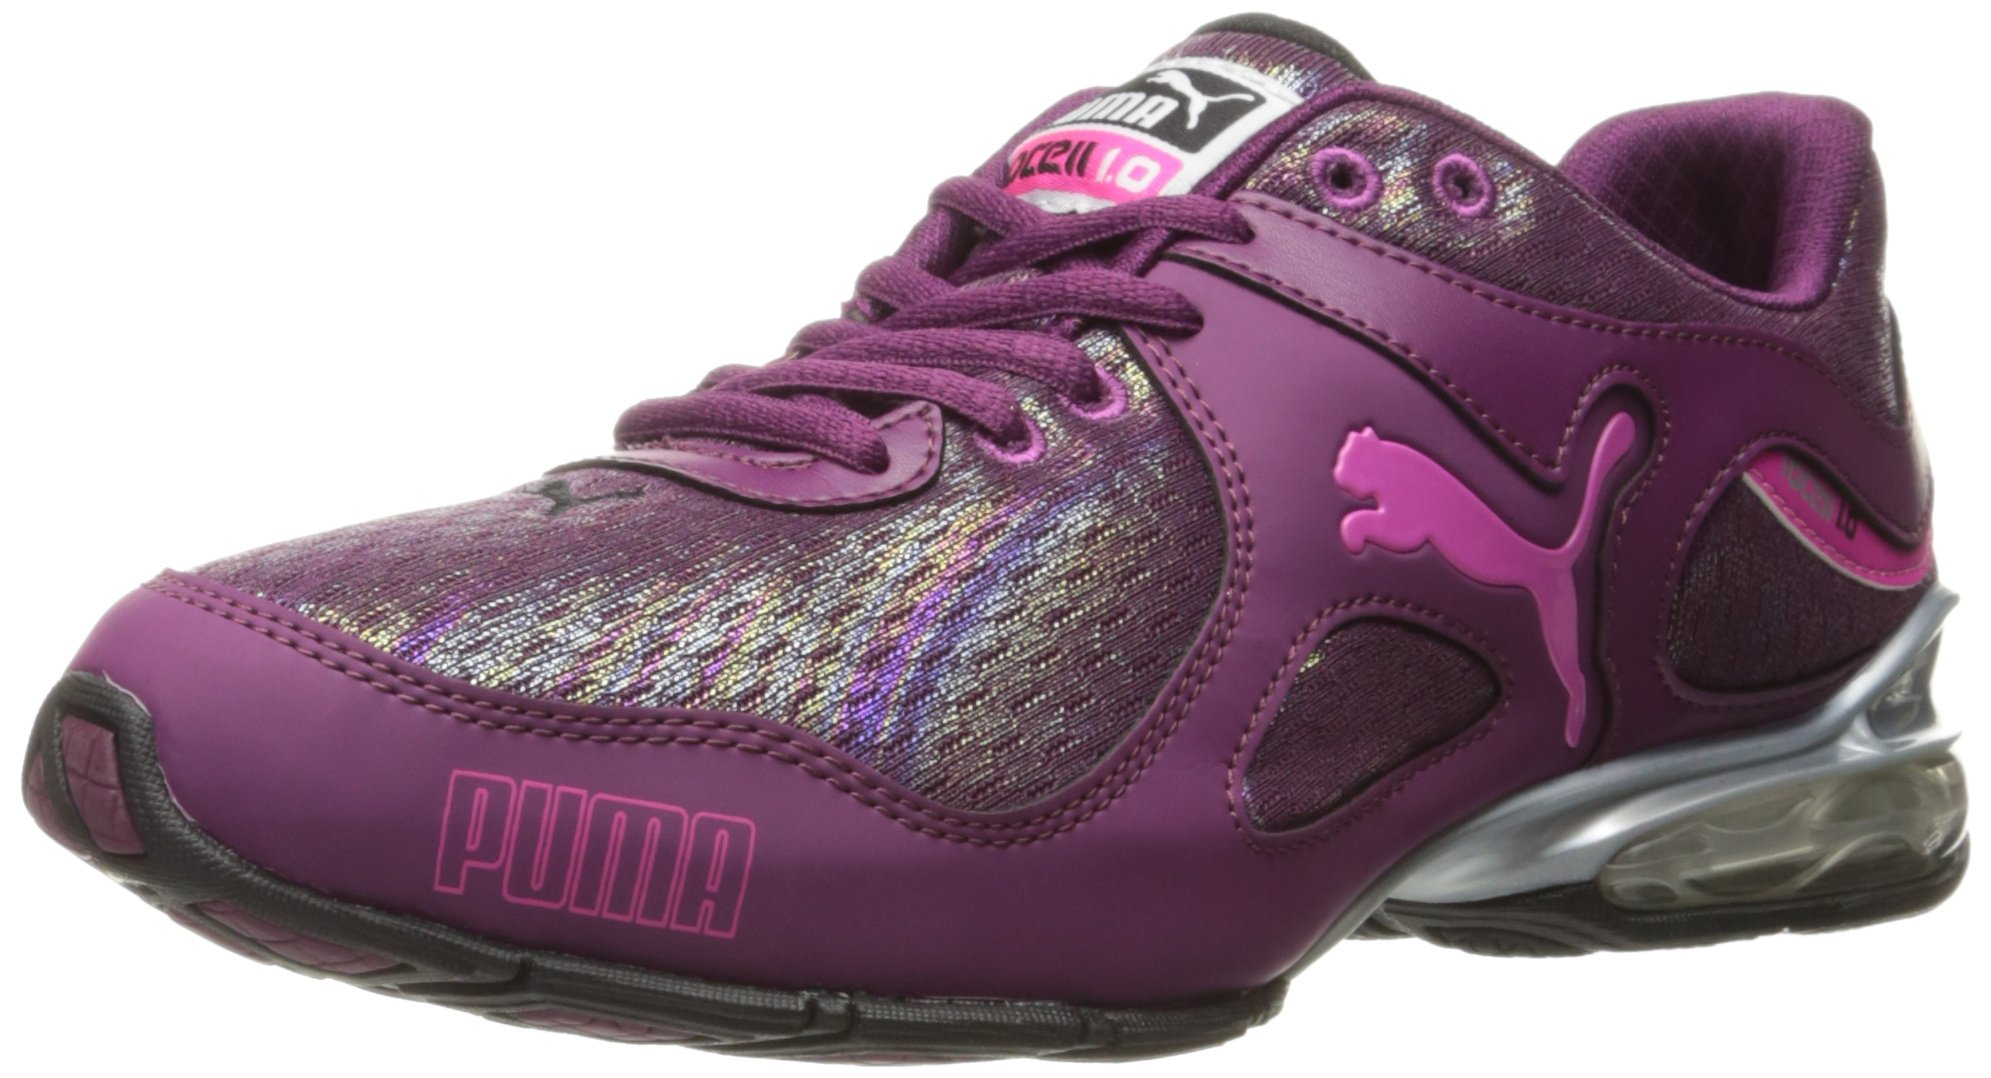 cbbde37d03ea Galleon - PUMA Women s Cell Riaze Prism Wn s Cross-Trainer Shoe ...